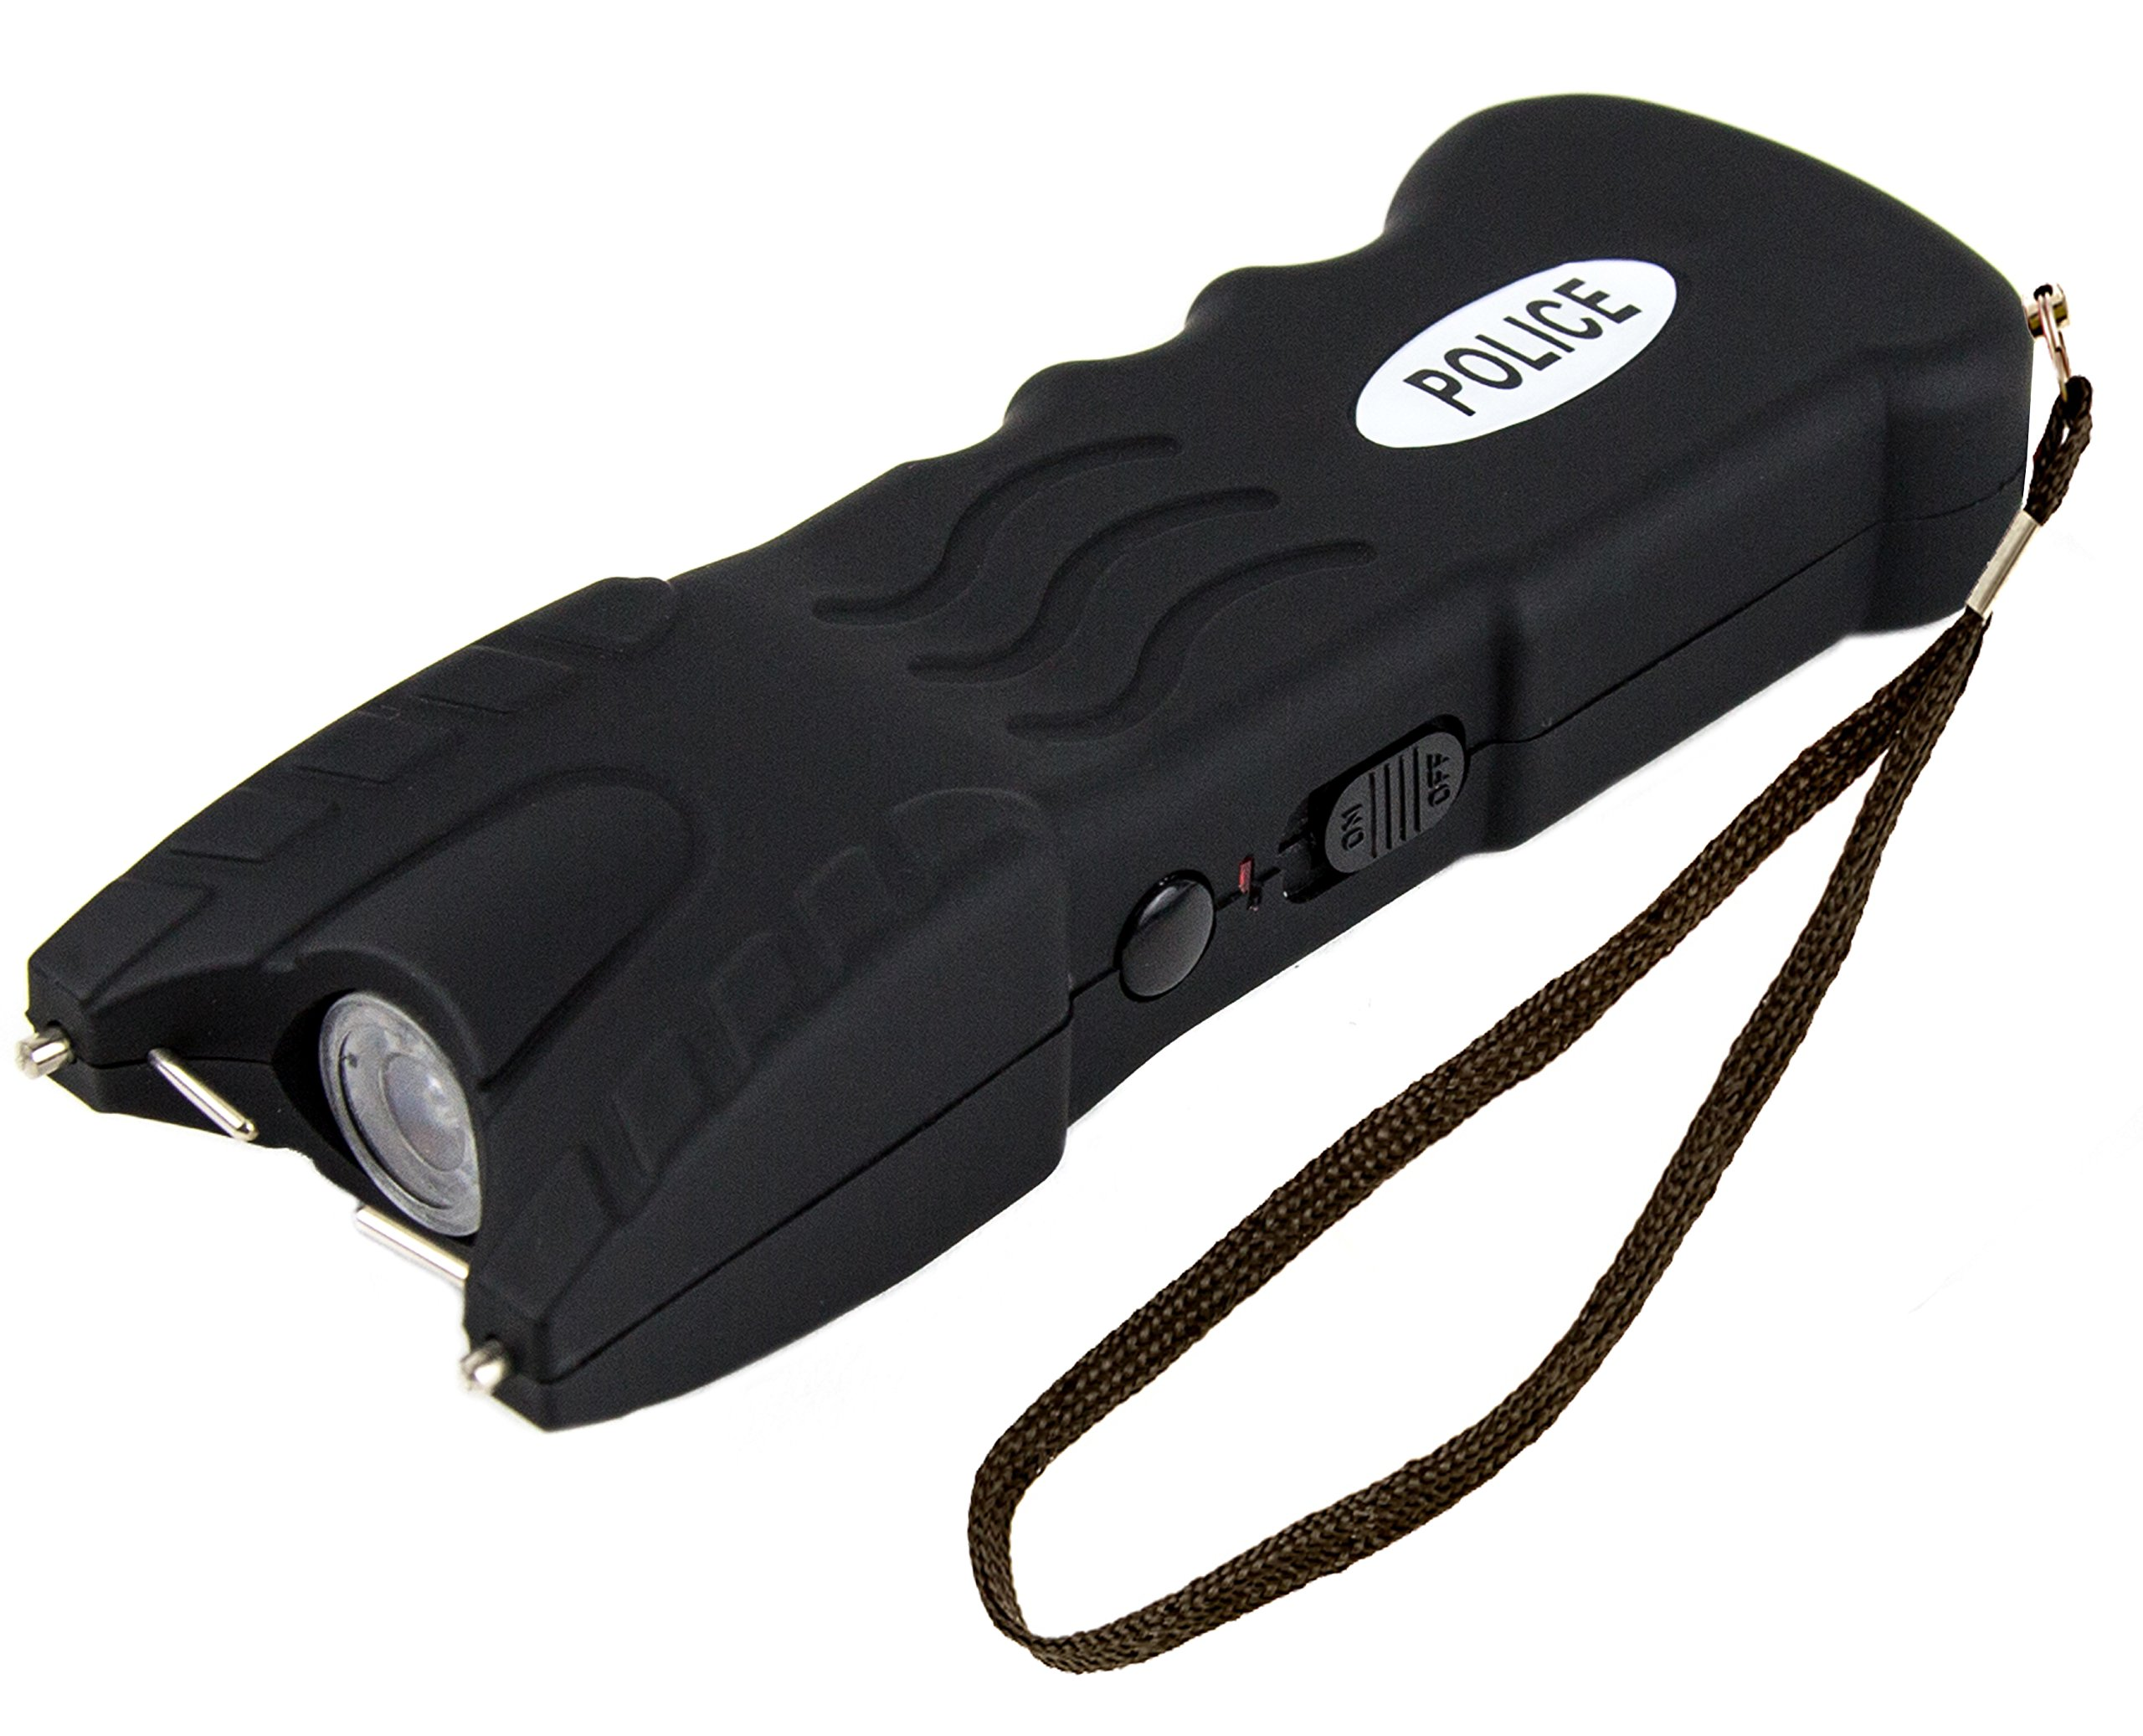 Police 916B - Max Voltage Heavy Duty Stun Gun - Rechargeable With Safety Disable Pin LED Light and Holster Case, Black by Police